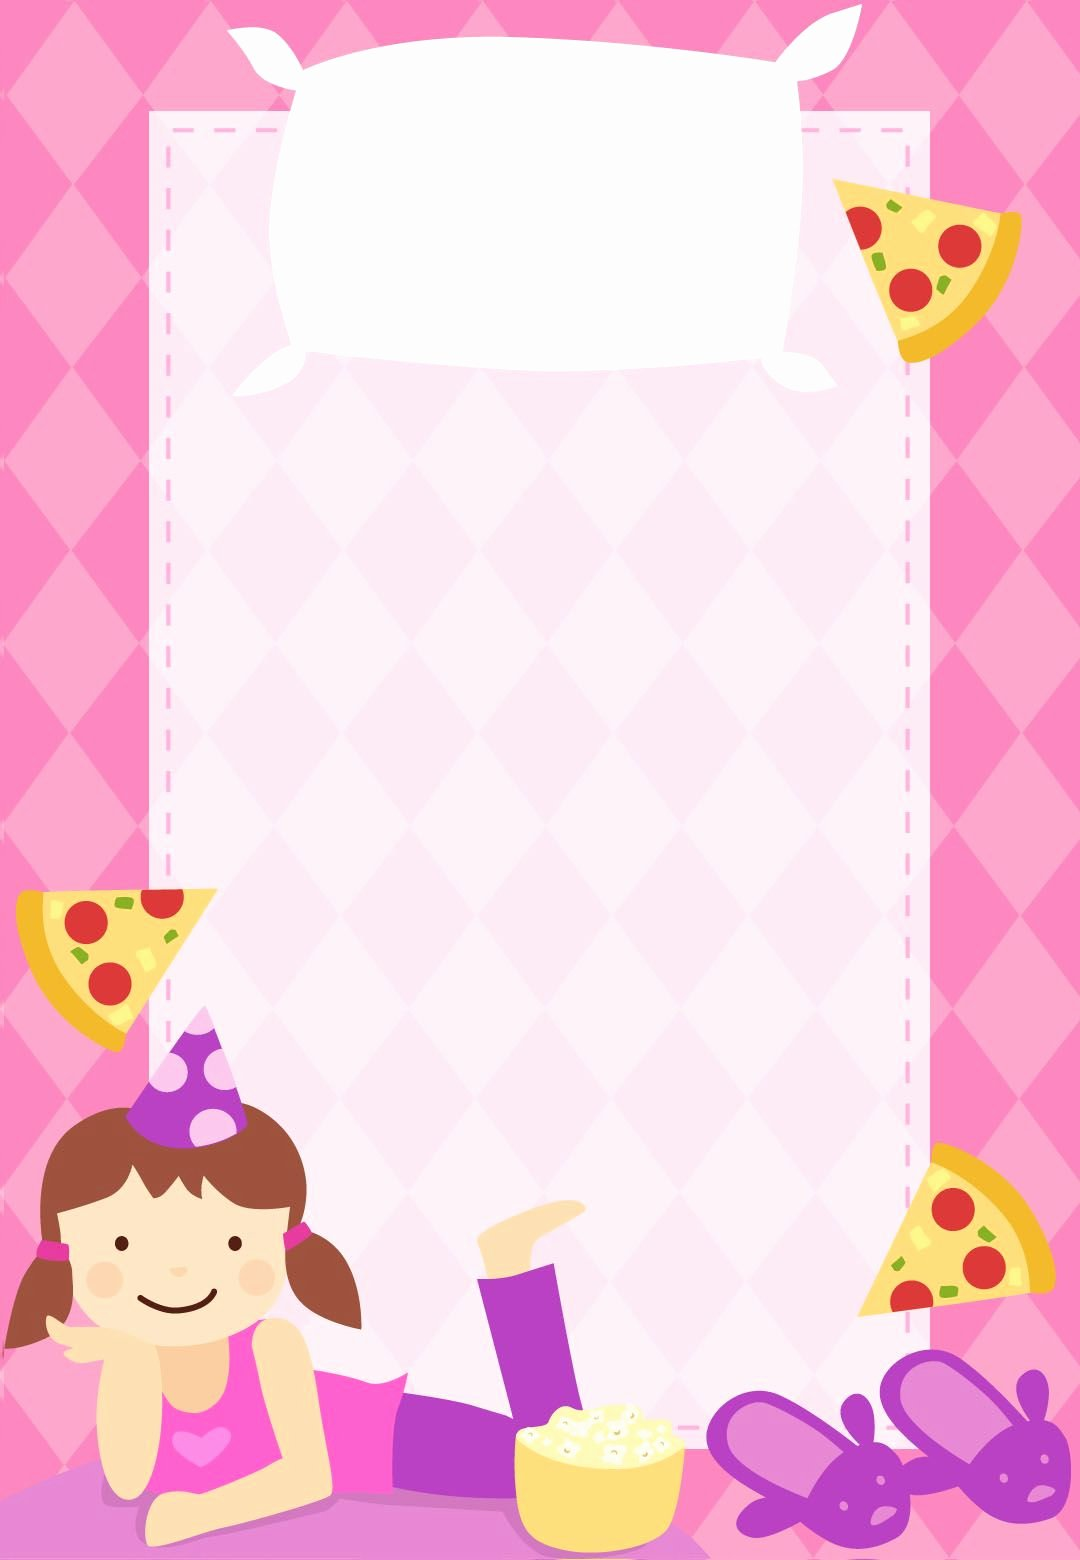 Slumber Party Invitation Template Awesome Free Printable Sleepover Party Invitation Customizable too